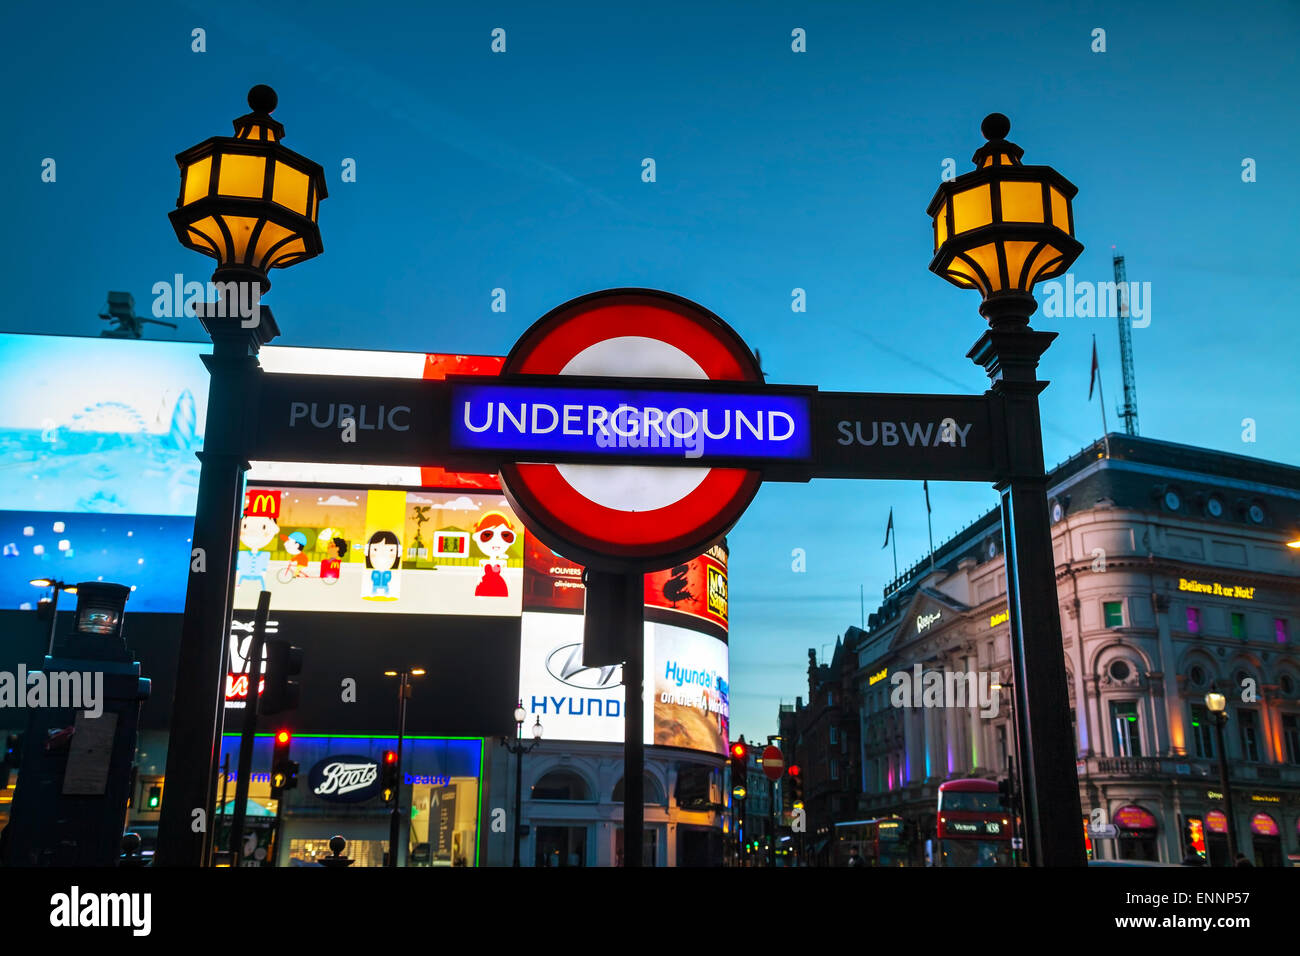 LONDON - APRIL 12: London underground sign at the Piccadilly Circus station on April 12, 2015 in London, UK. - Stock Image